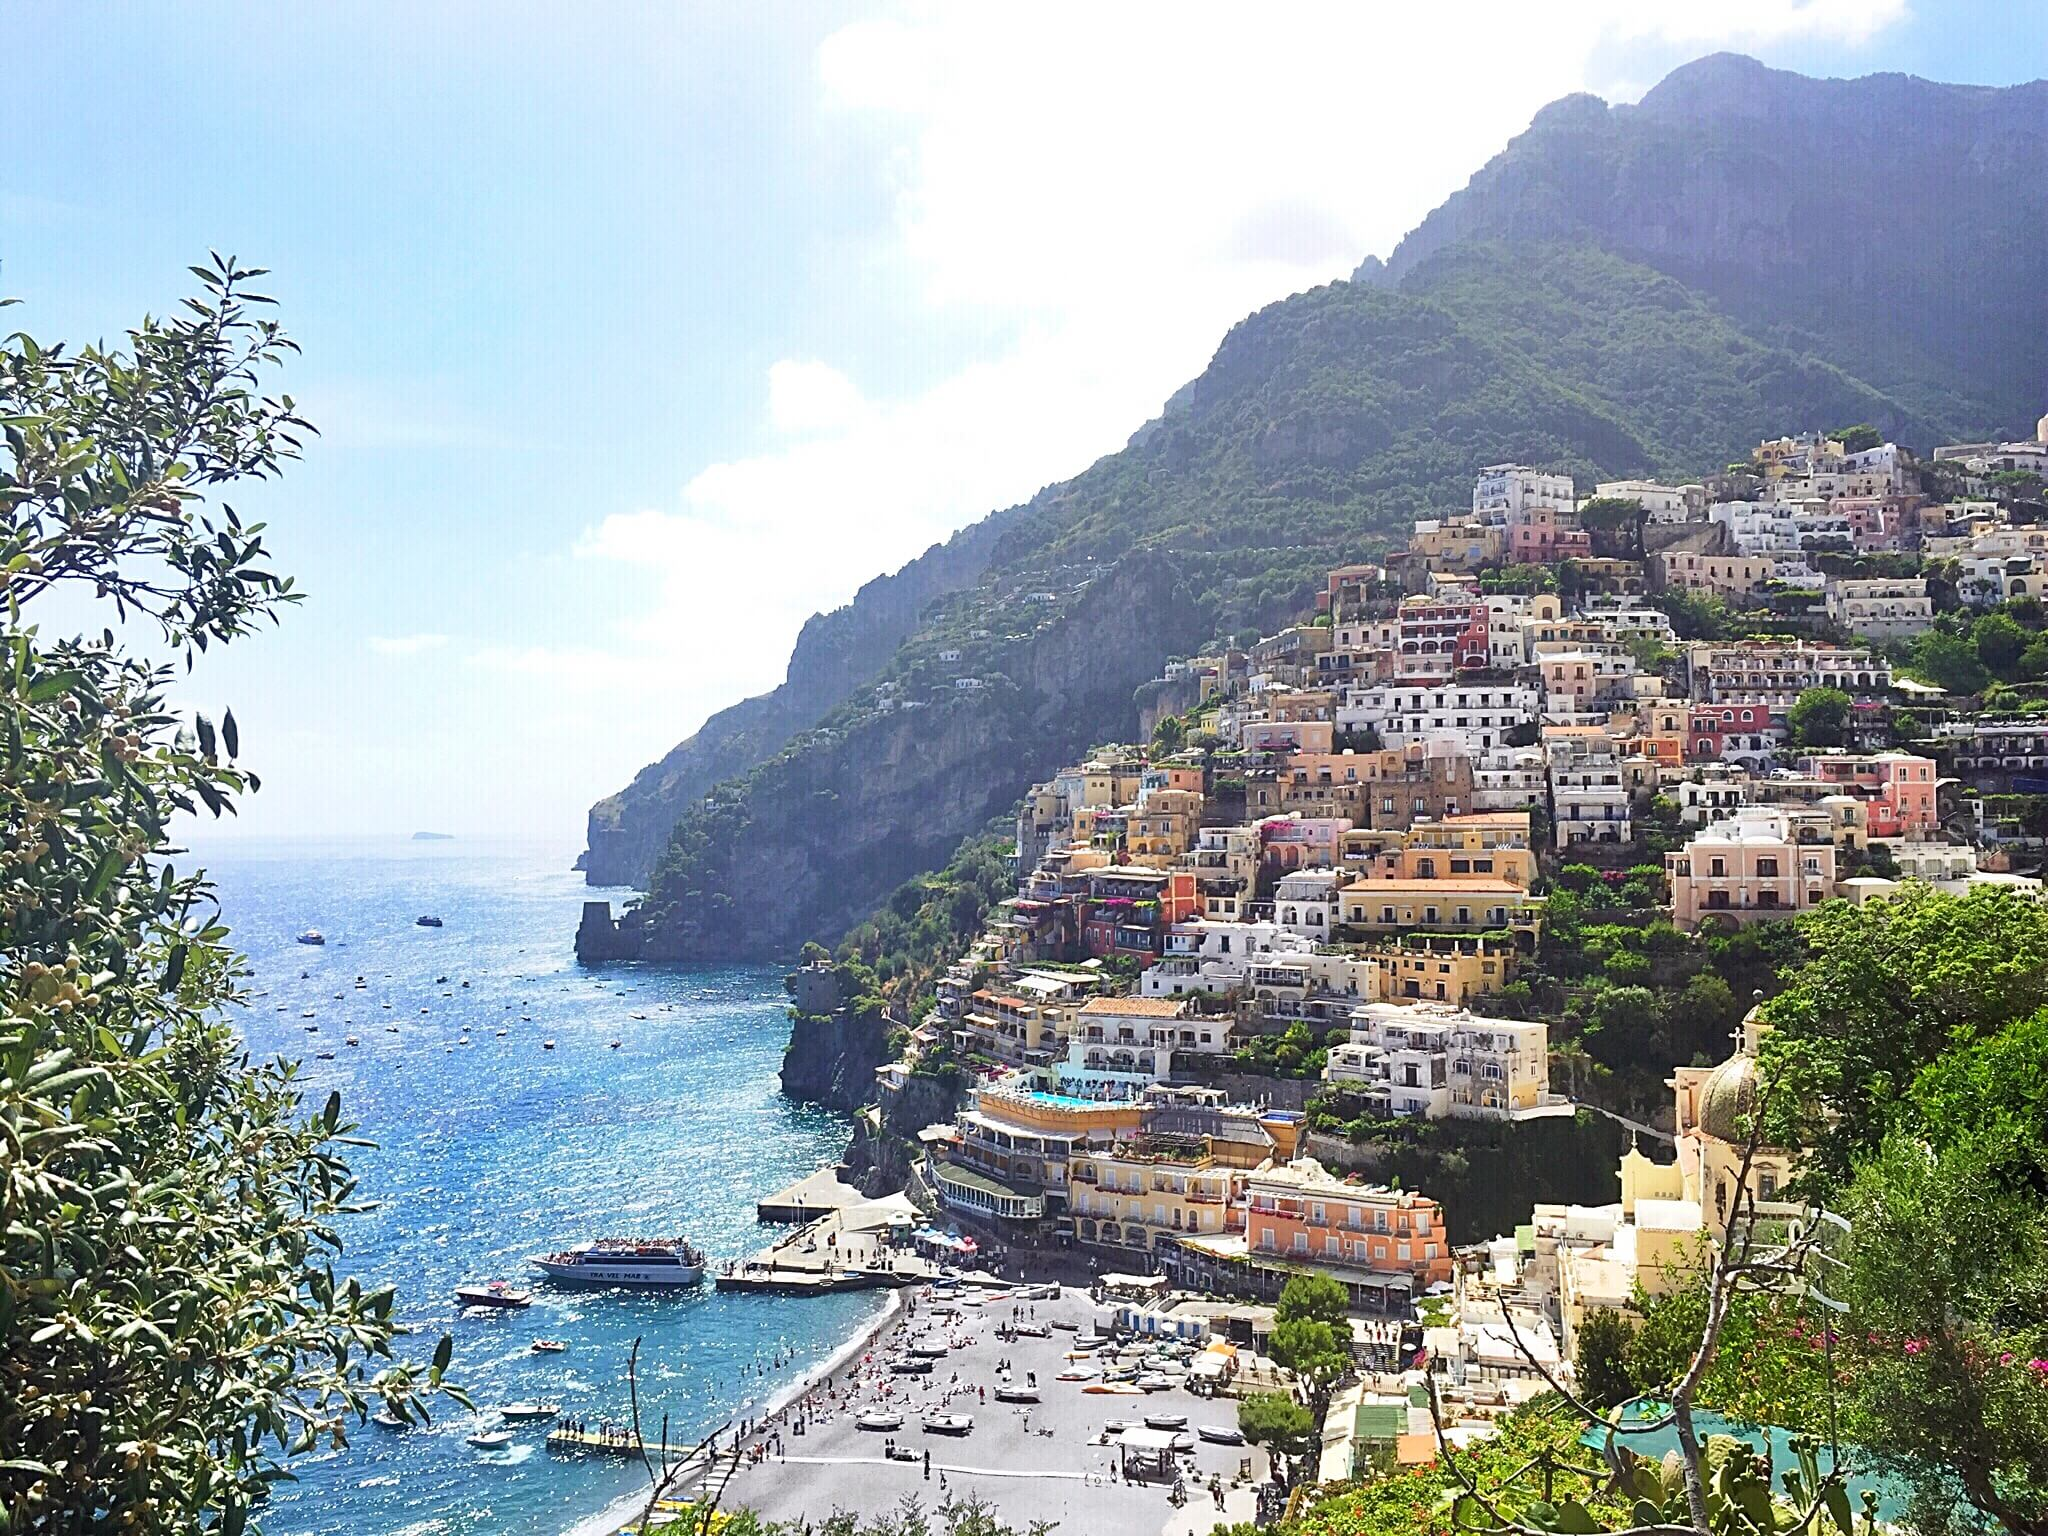 Picturesque view of Positano, jewel of the Amalfi Coast